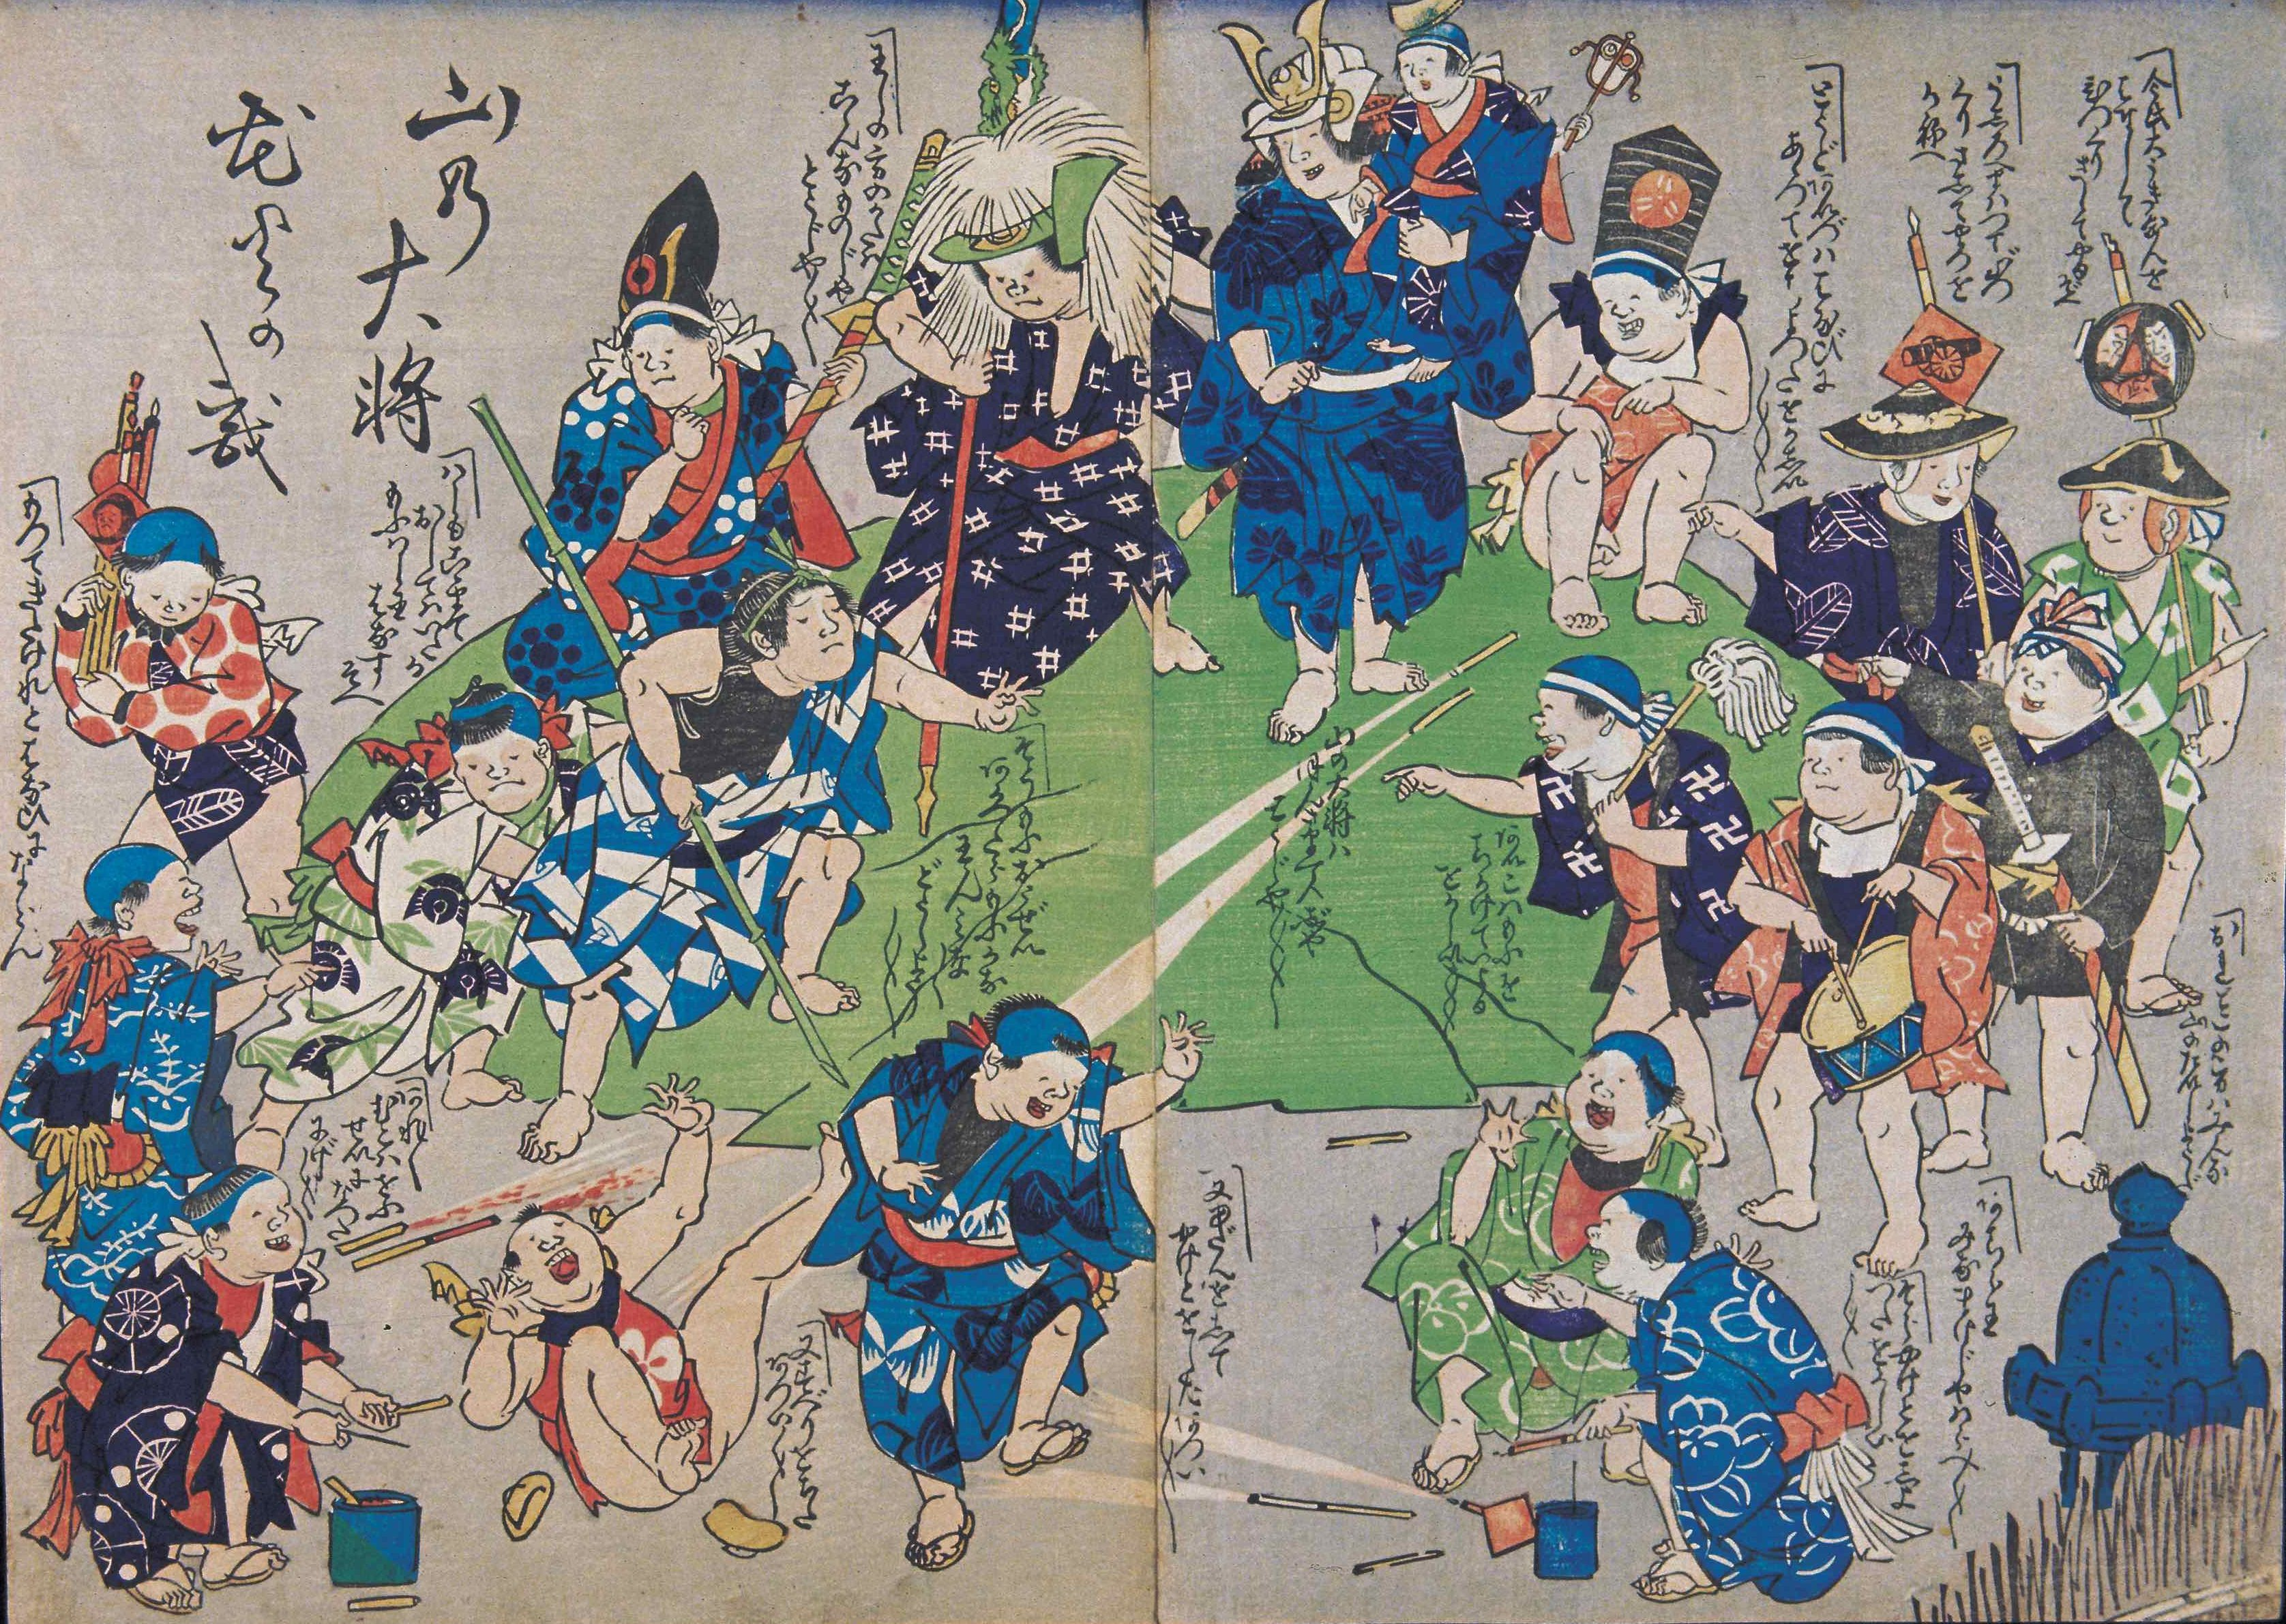 An illustration depicting a busy scene of children playing and setting off fireworks on a small hill. Many of the children have prop weapons, like wooden swords, sticks, and mops.